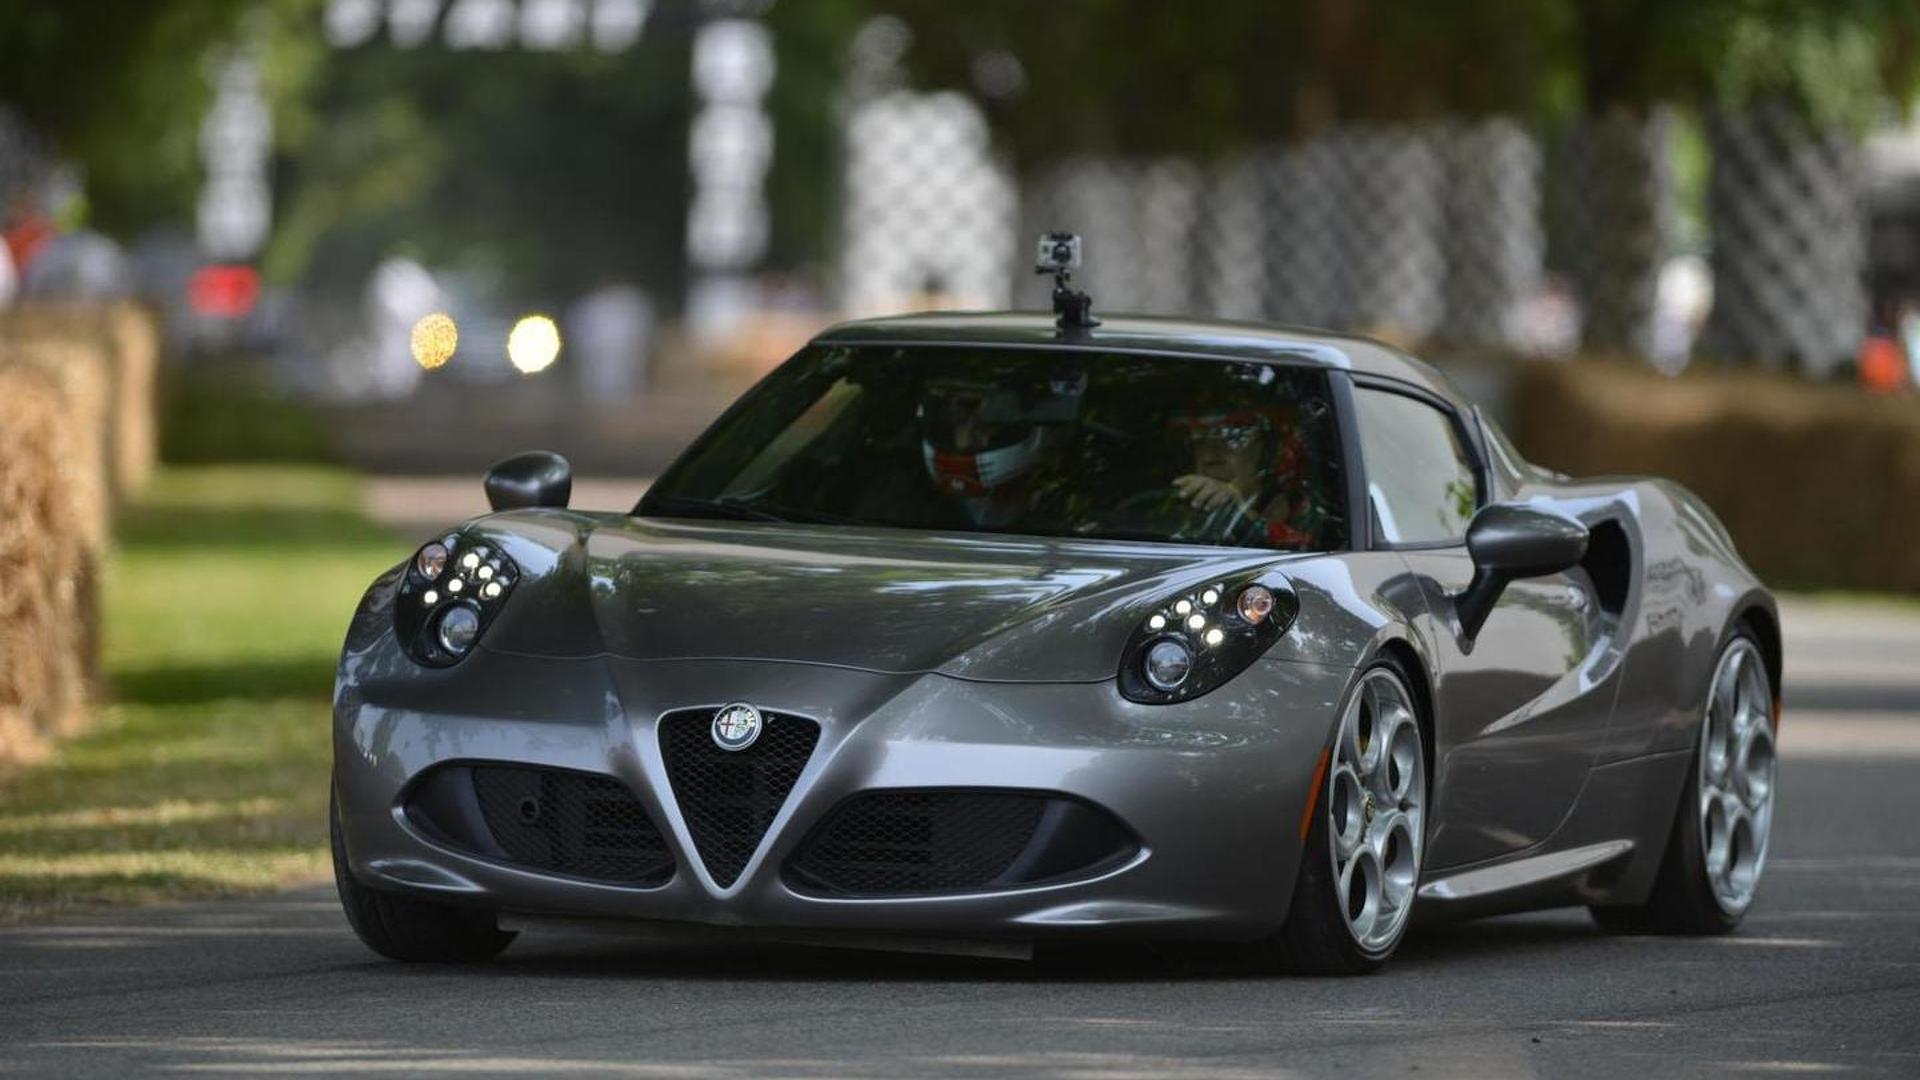 USspec Alfa Romeo C Is Lbs Fatter Than Euro Model Priced At - Price for alfa romeo 4c